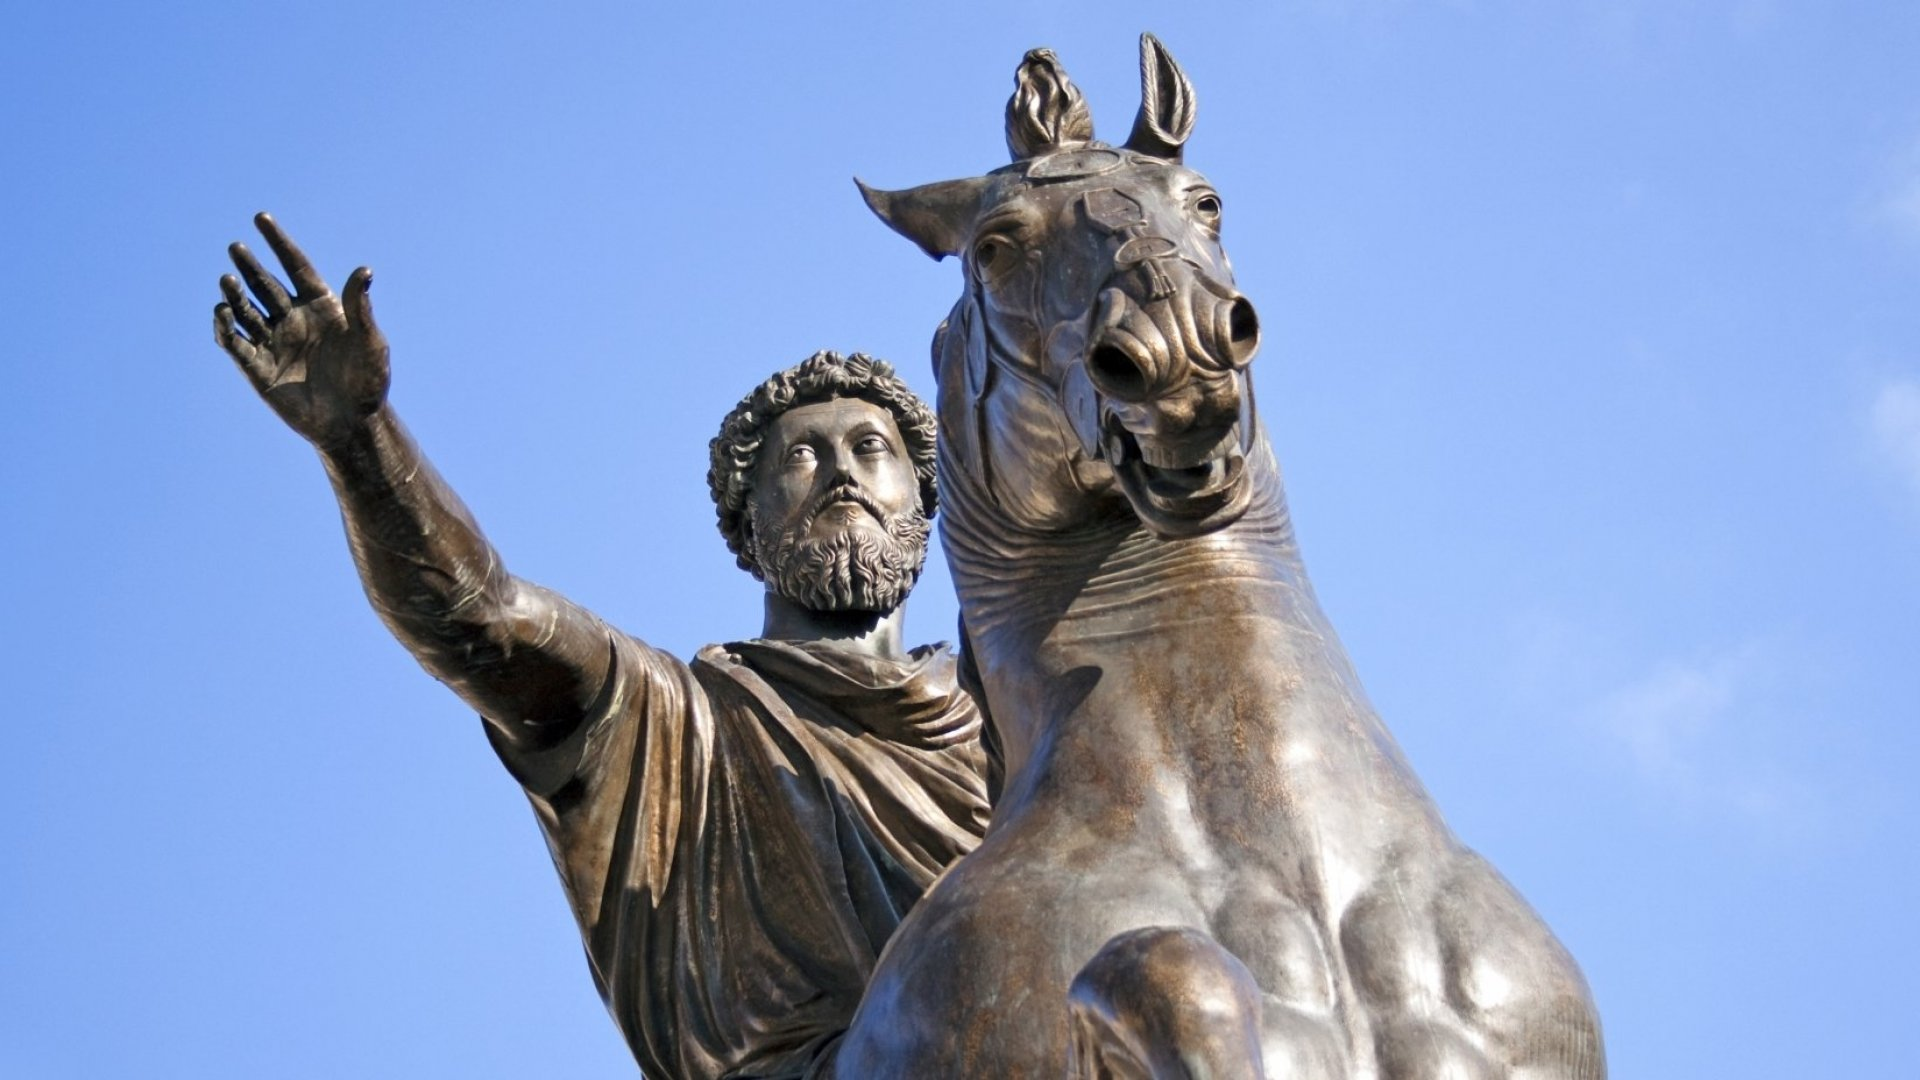 A statue of Marcus Aurelius in Rome.